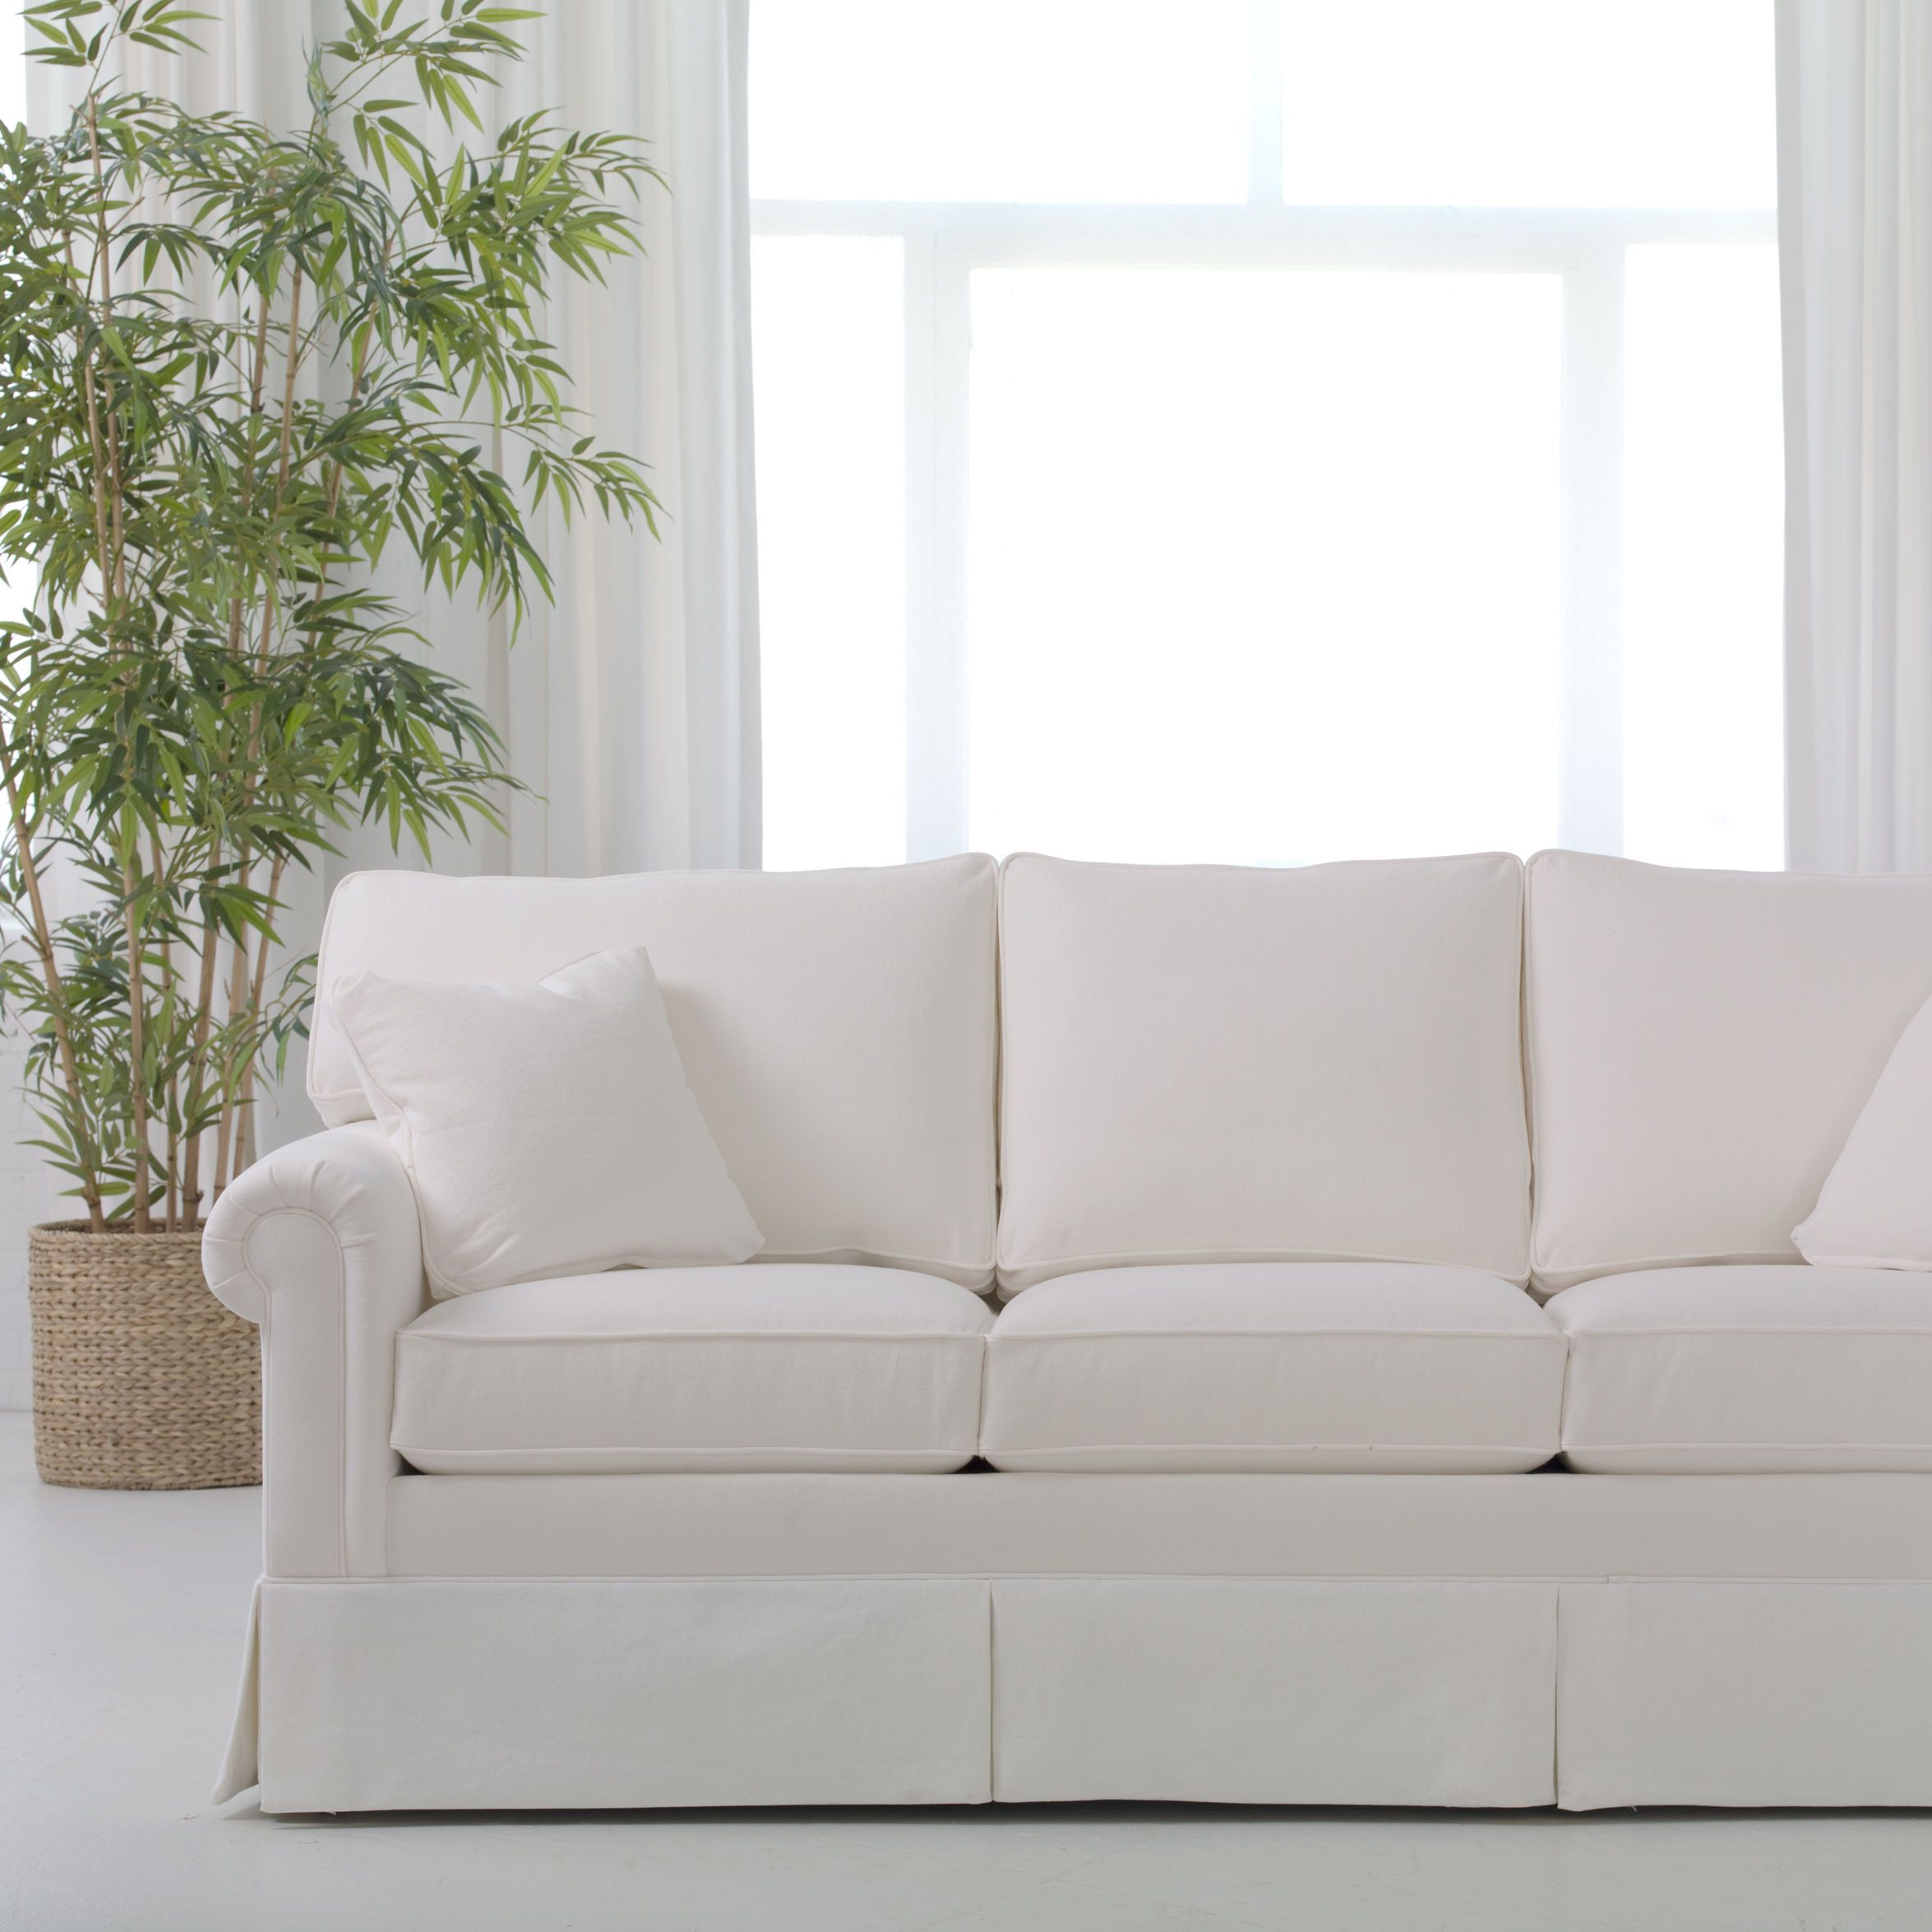 Paramount Sofa Ethan Allen Futura Reviews Panel Arm Sofas Us Options Pinterest Furniture And Styling